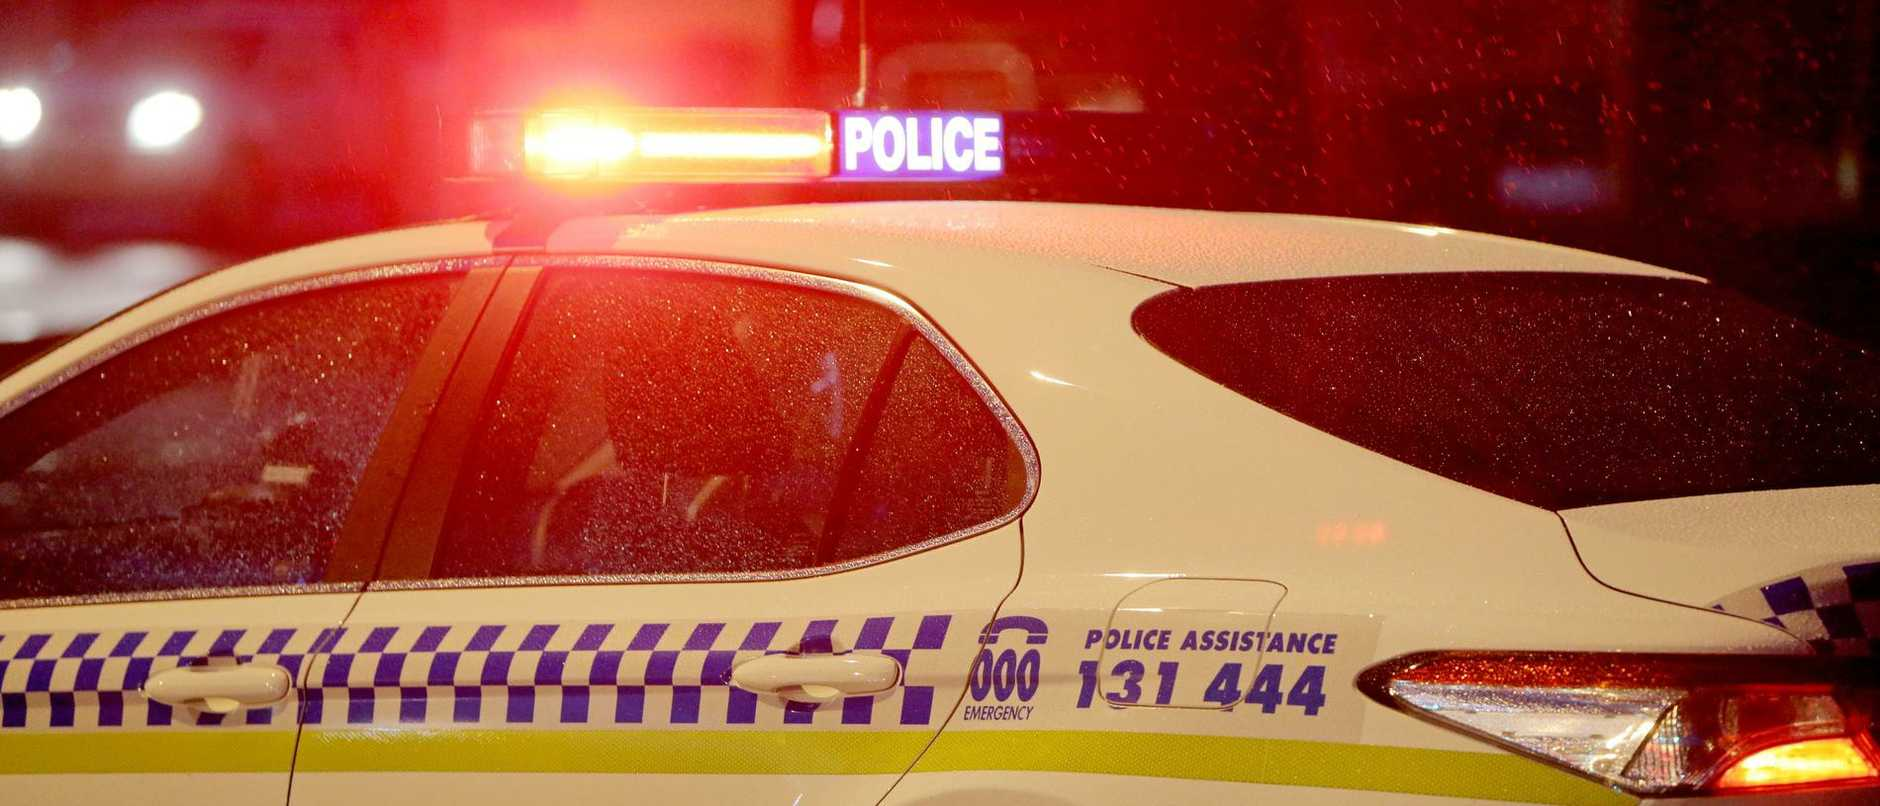 A man has been arrested after allegedly ramming a police car.